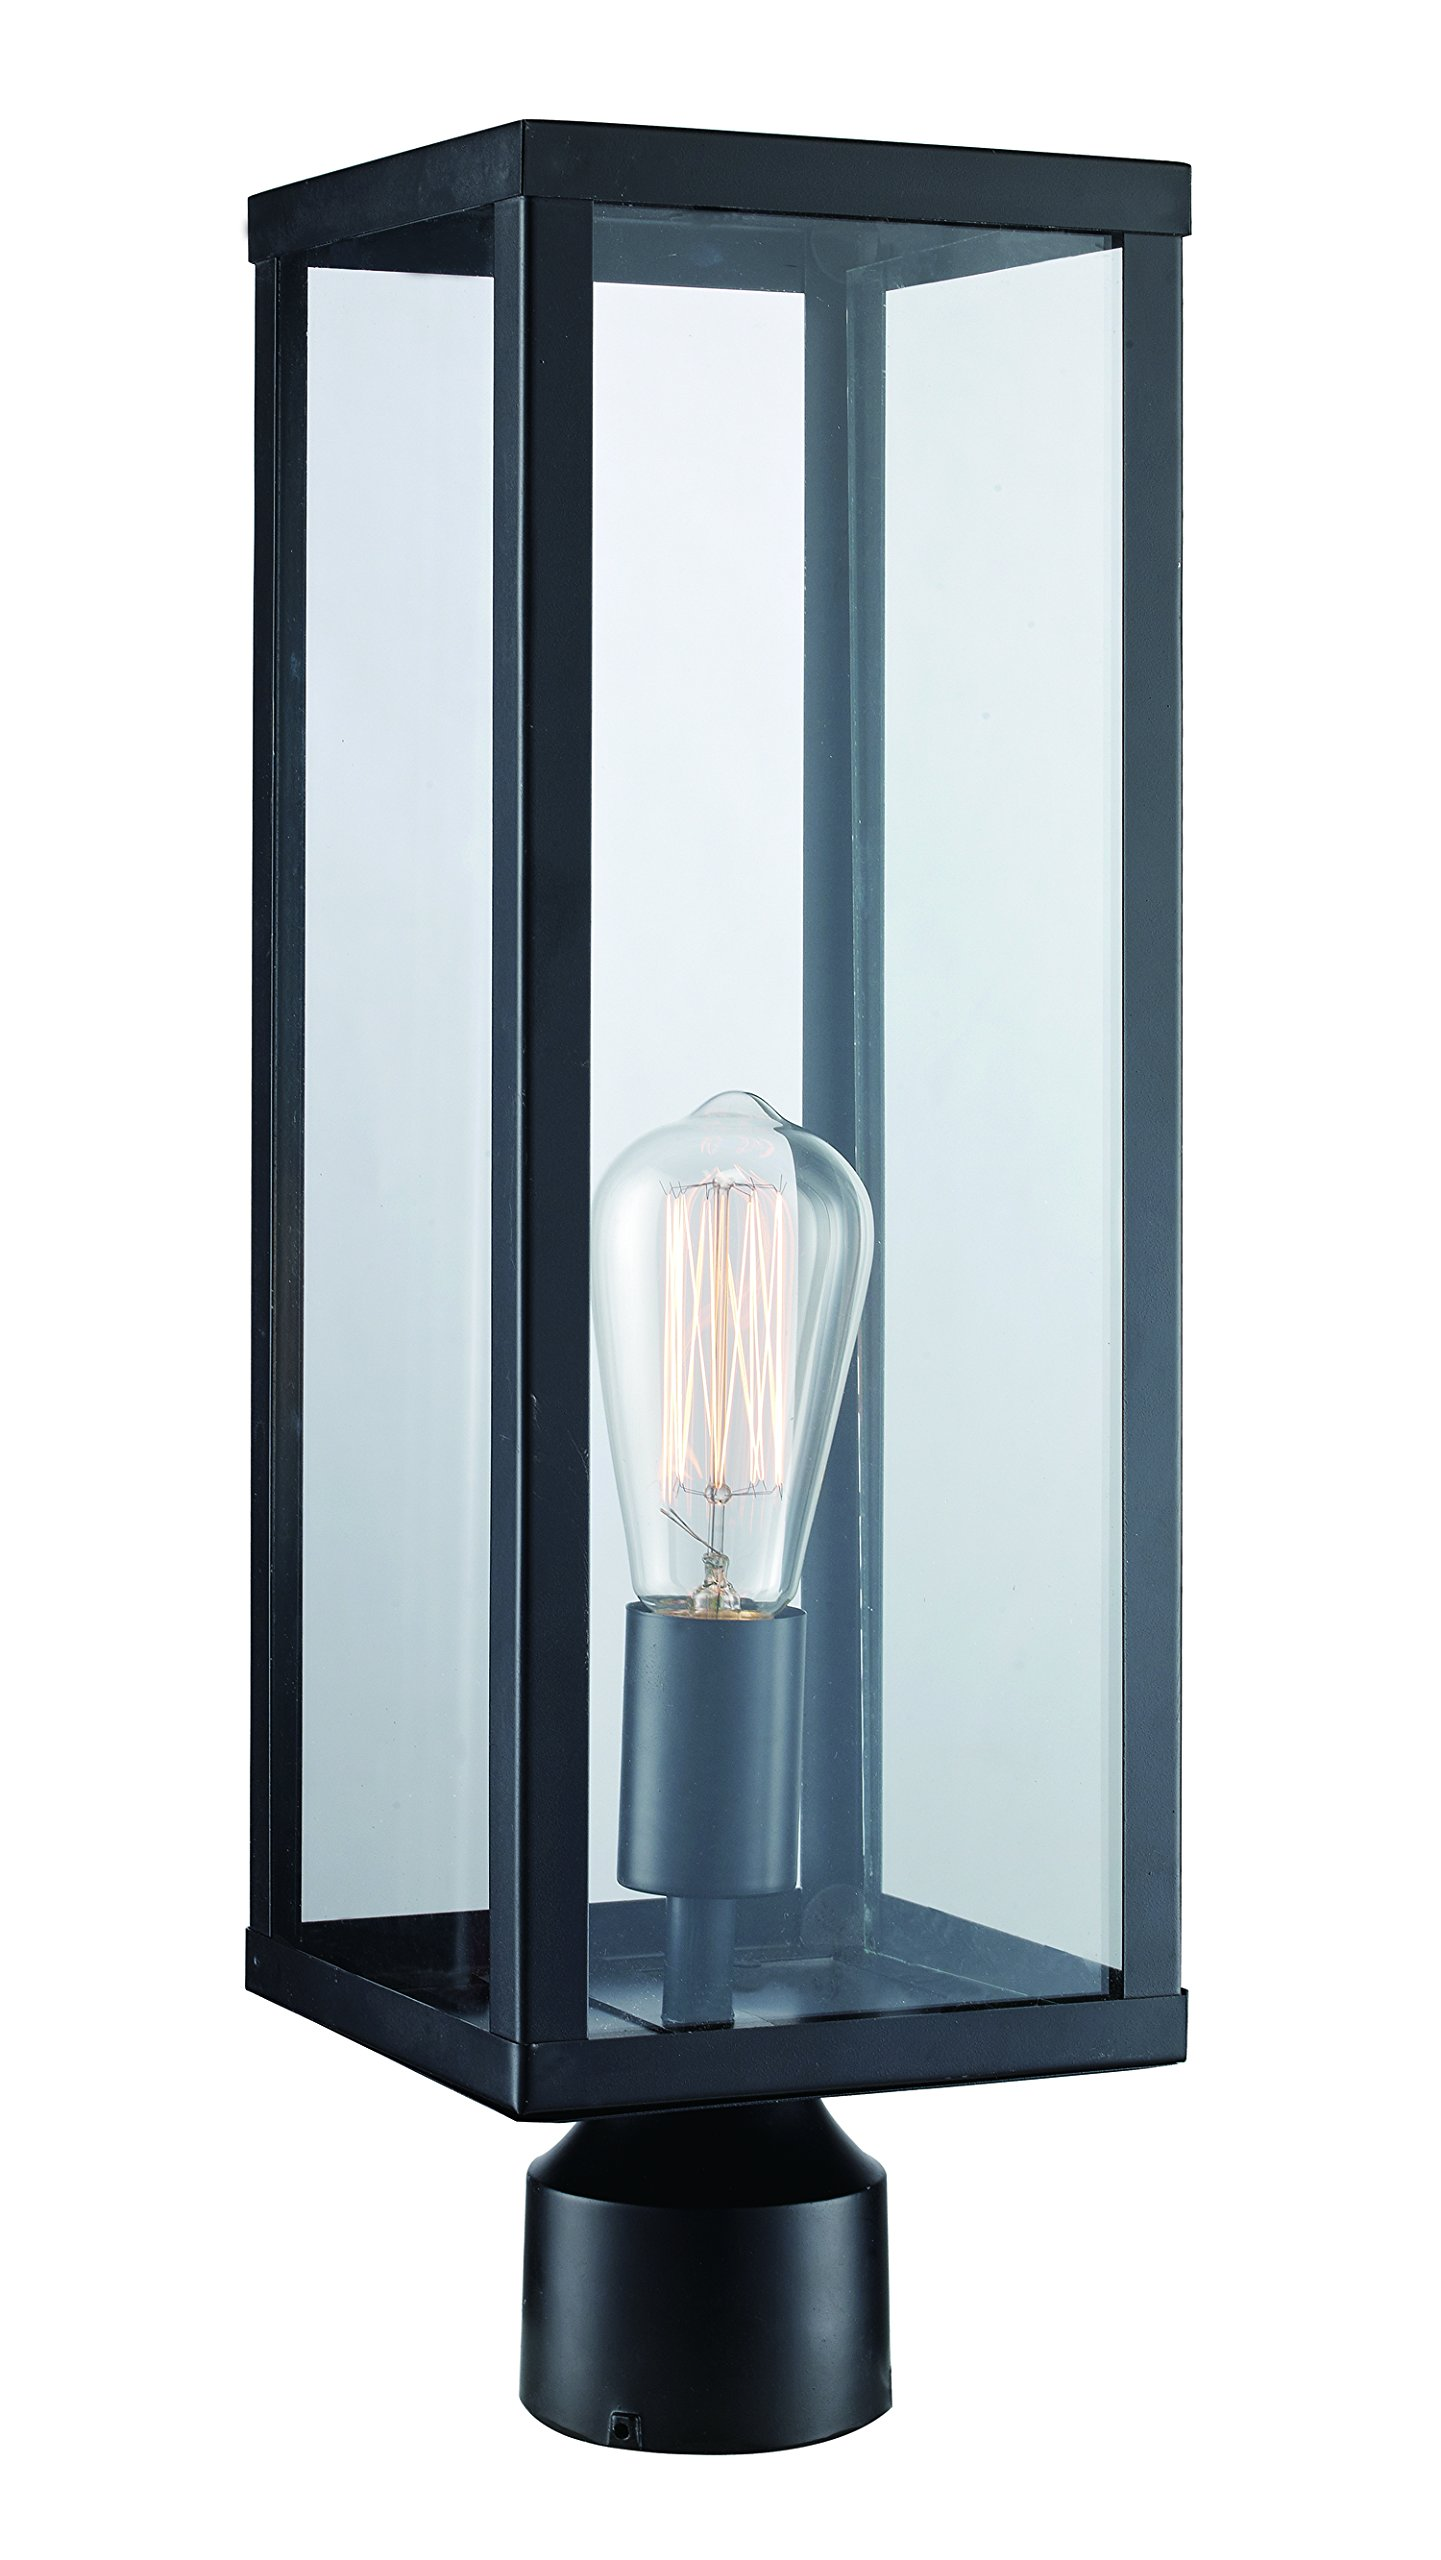 Trans Globe Lighting 40754 BK Oxford Industrial Postmount Lantern, 19.25'', Outdoor Black